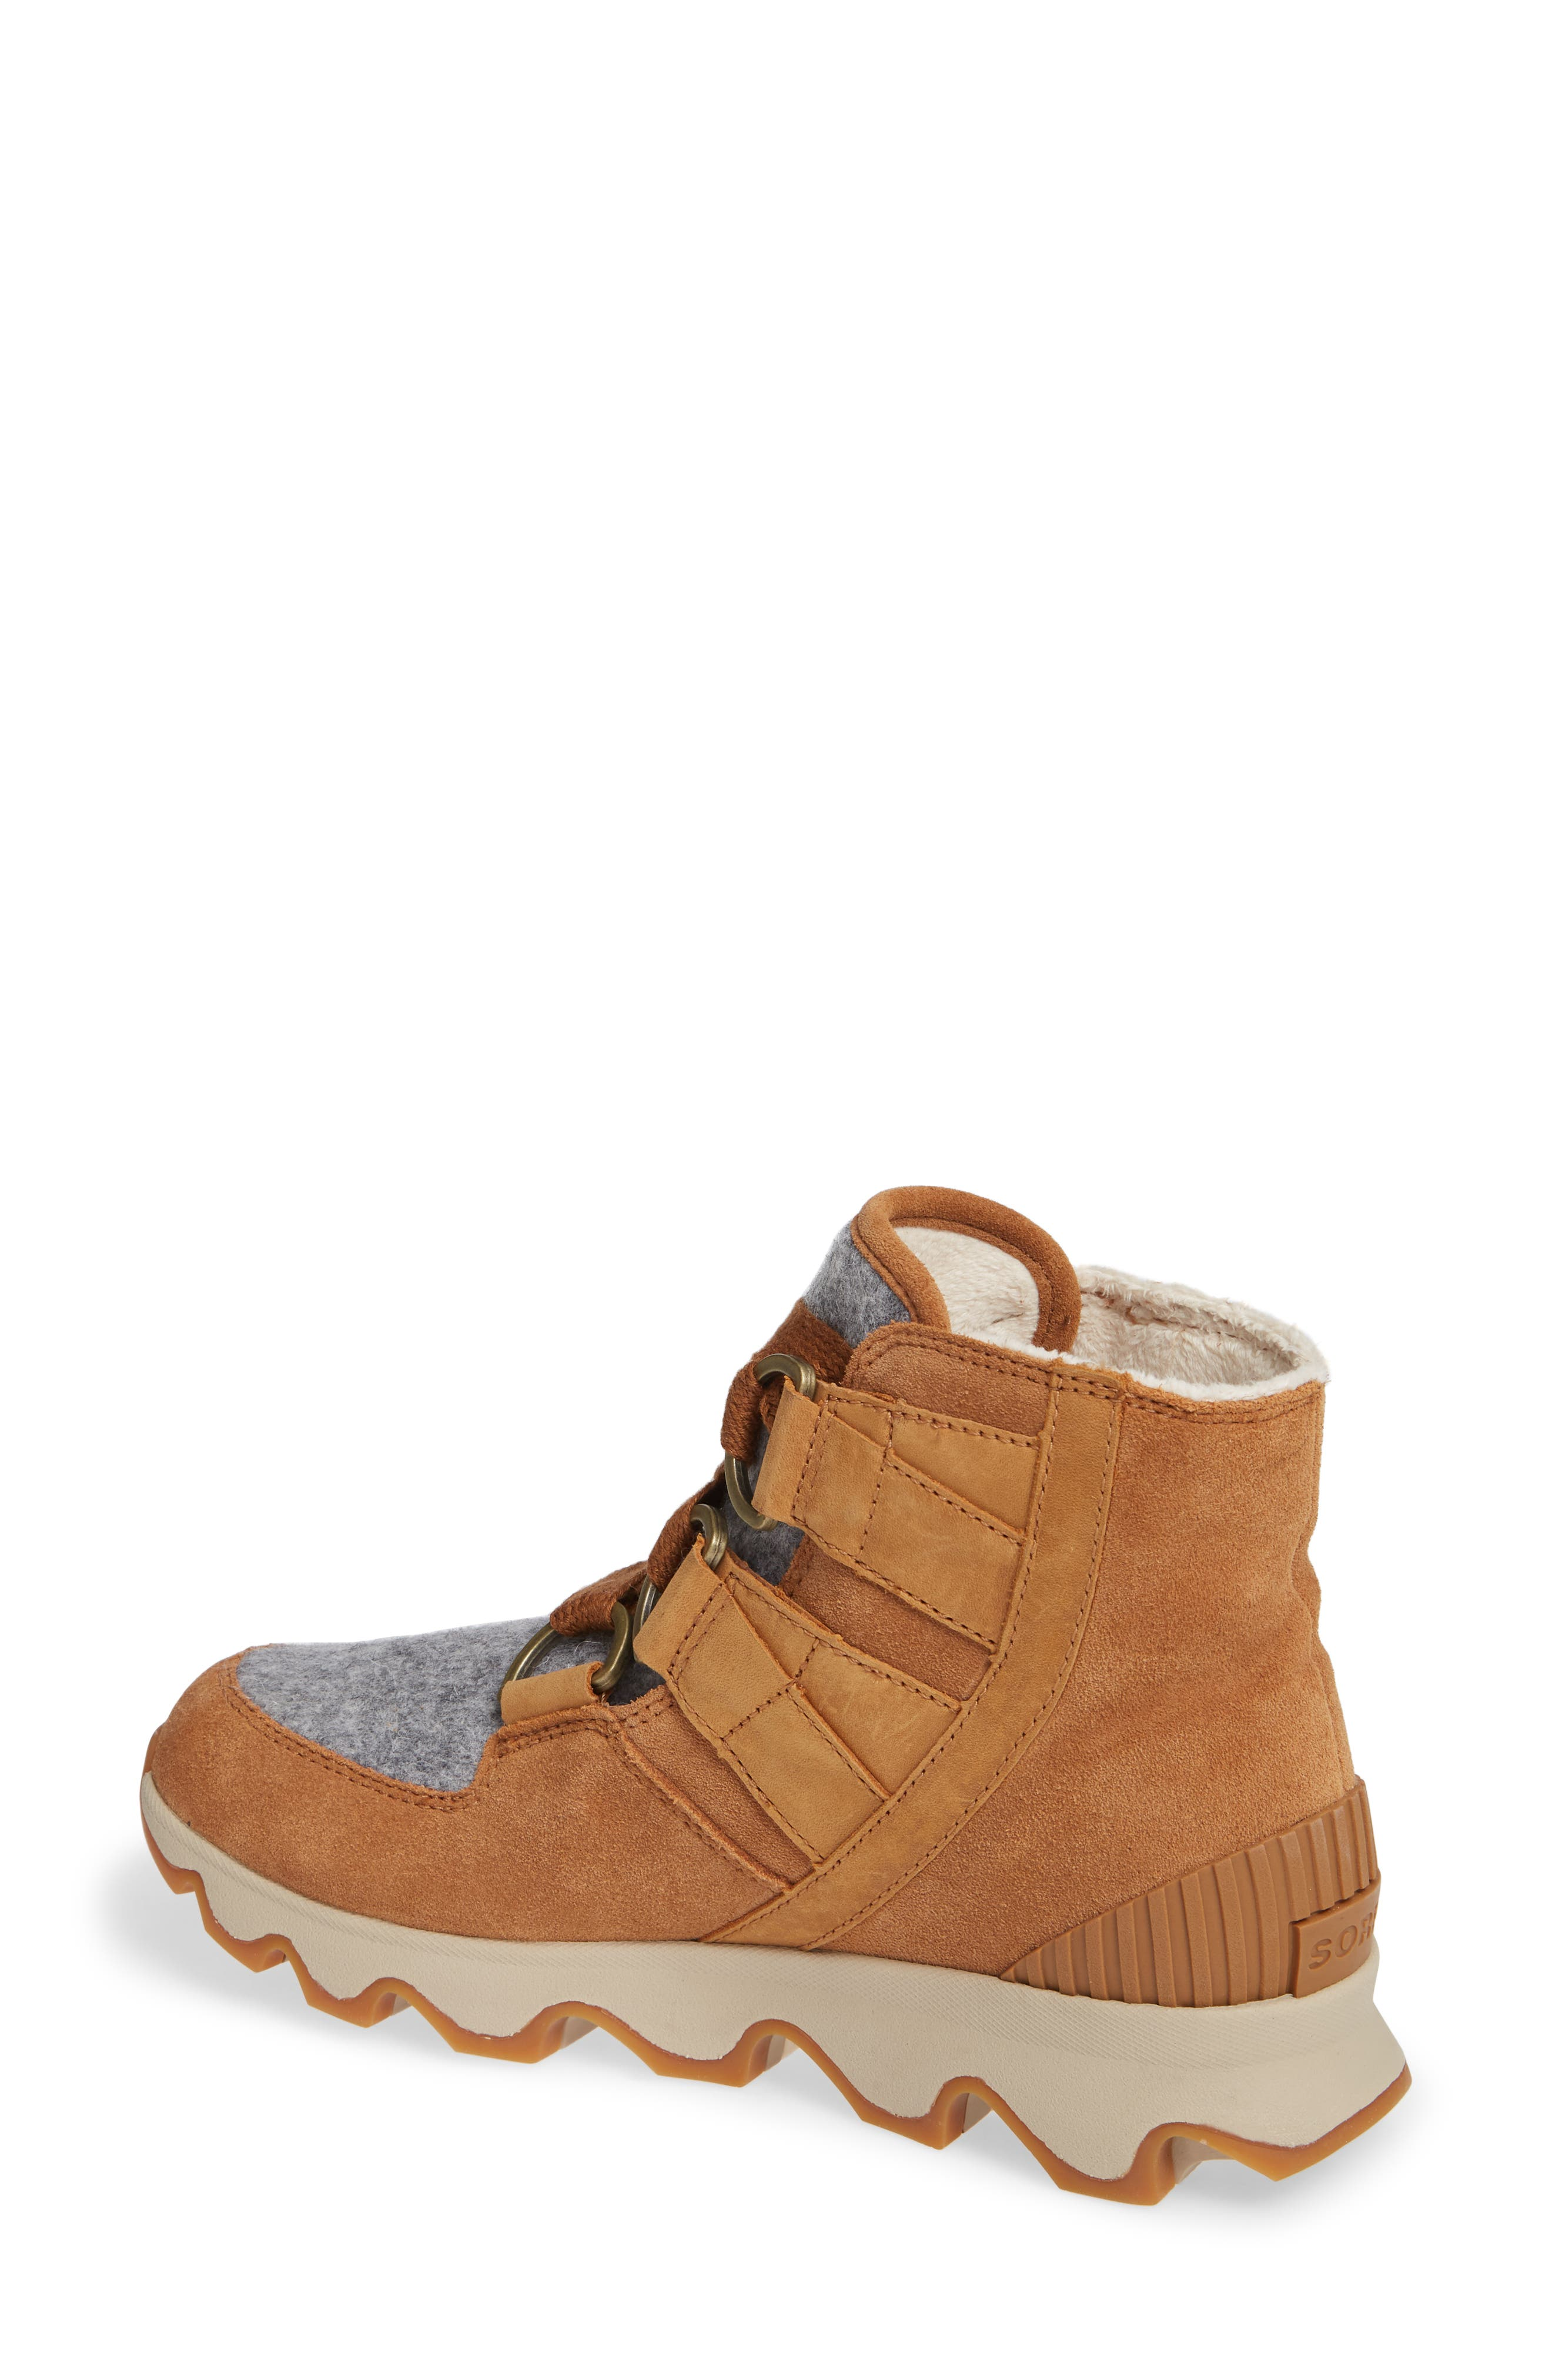 Kinetic Waterproof Short Lace-Up Boot,                             Alternate thumbnail 2, color,                             CAMEL BROWN